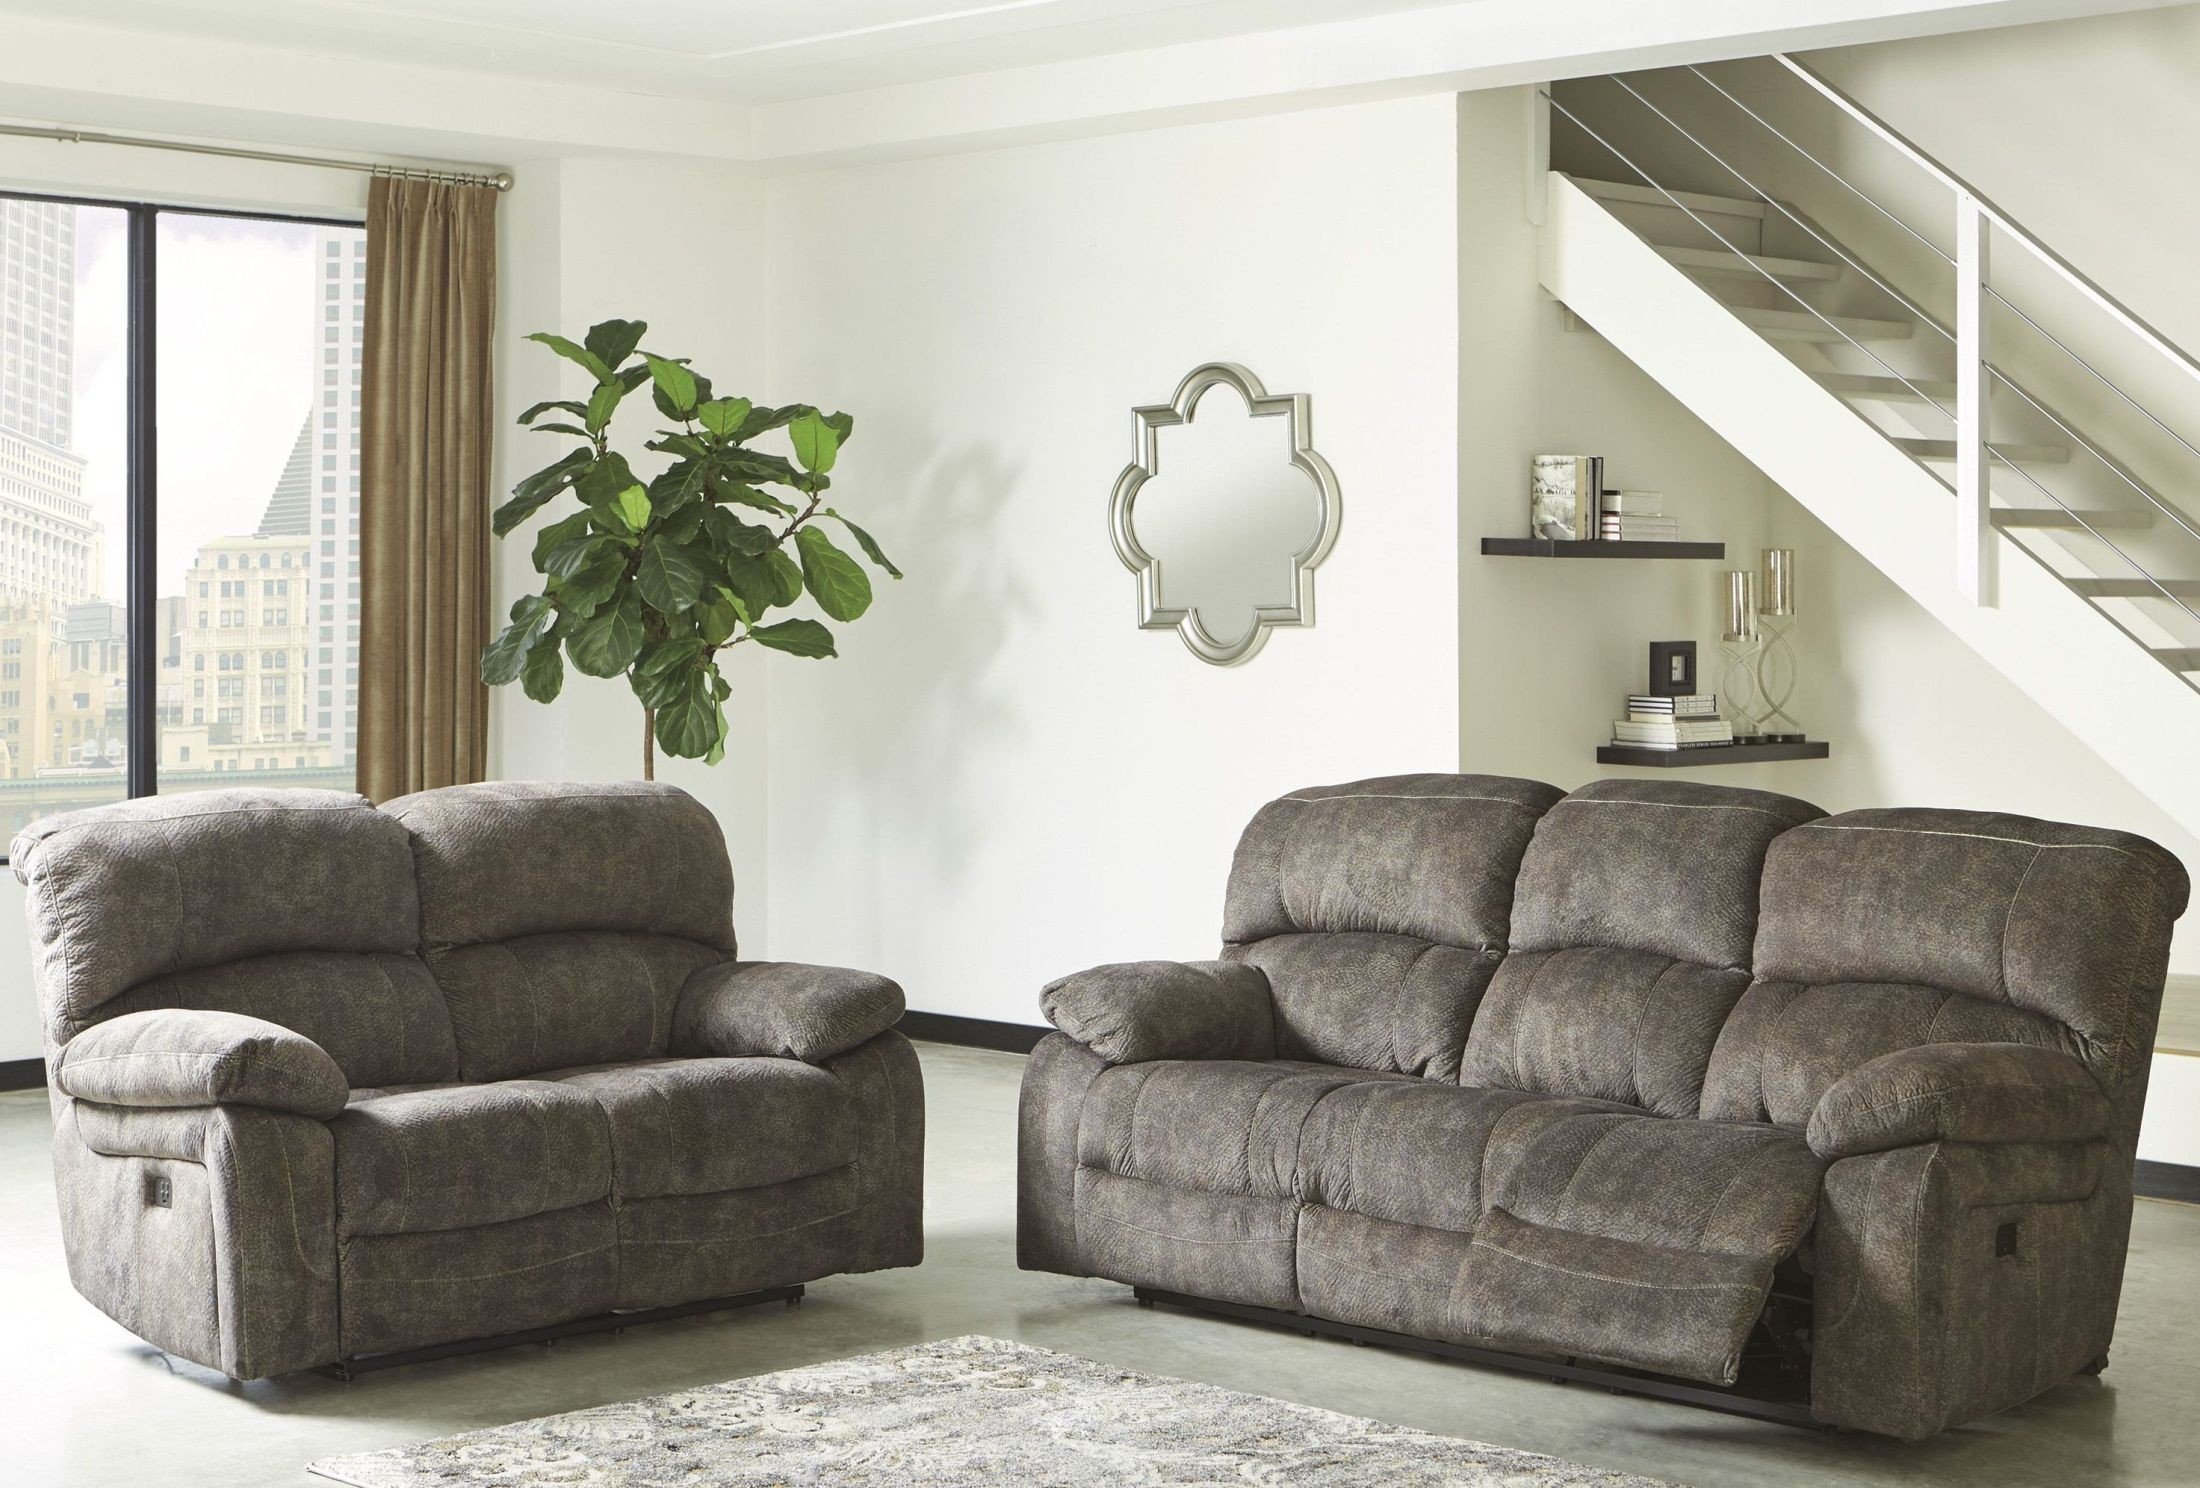 Cannelton Tri-Tone Gray Power Reclining Living Room Set from Ashley ...